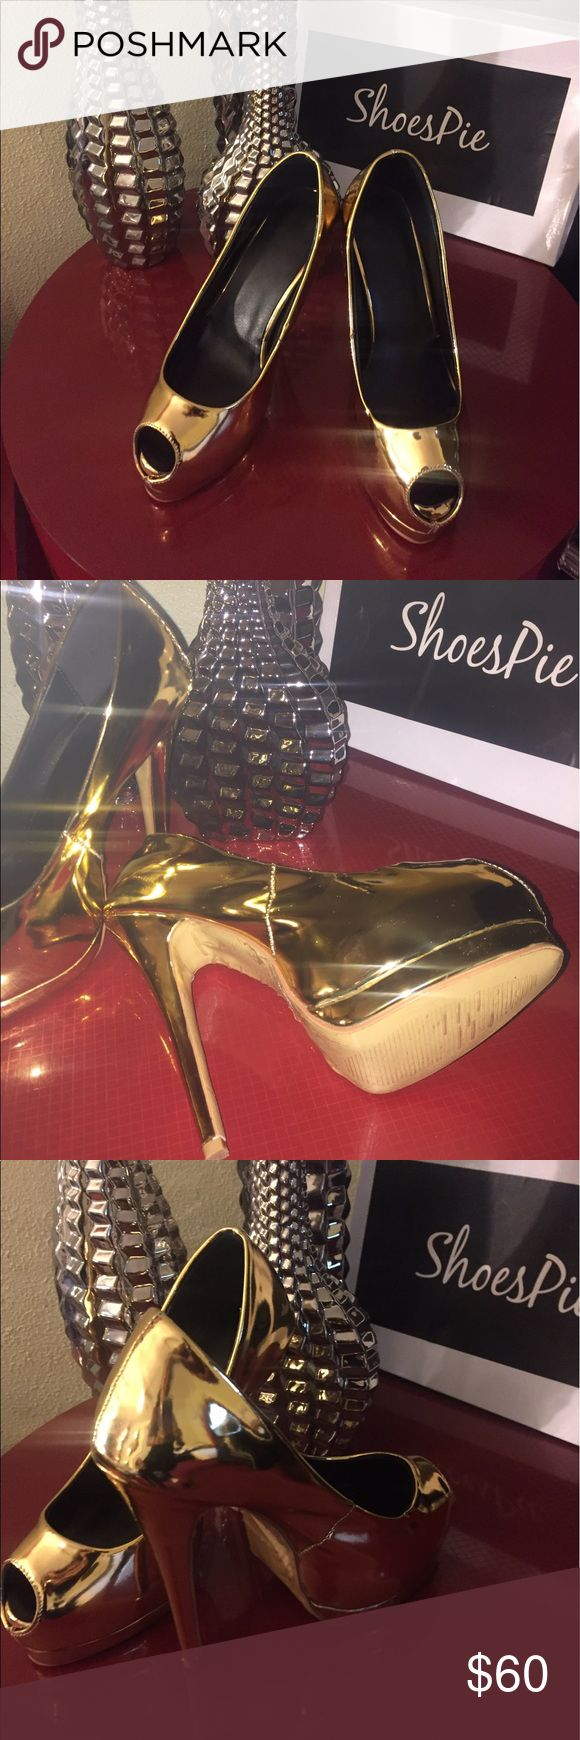 pumps gold shoes brand 👠 shoes pie:)  the original price is $90 never used is size 6 best offer Shoes Platforms